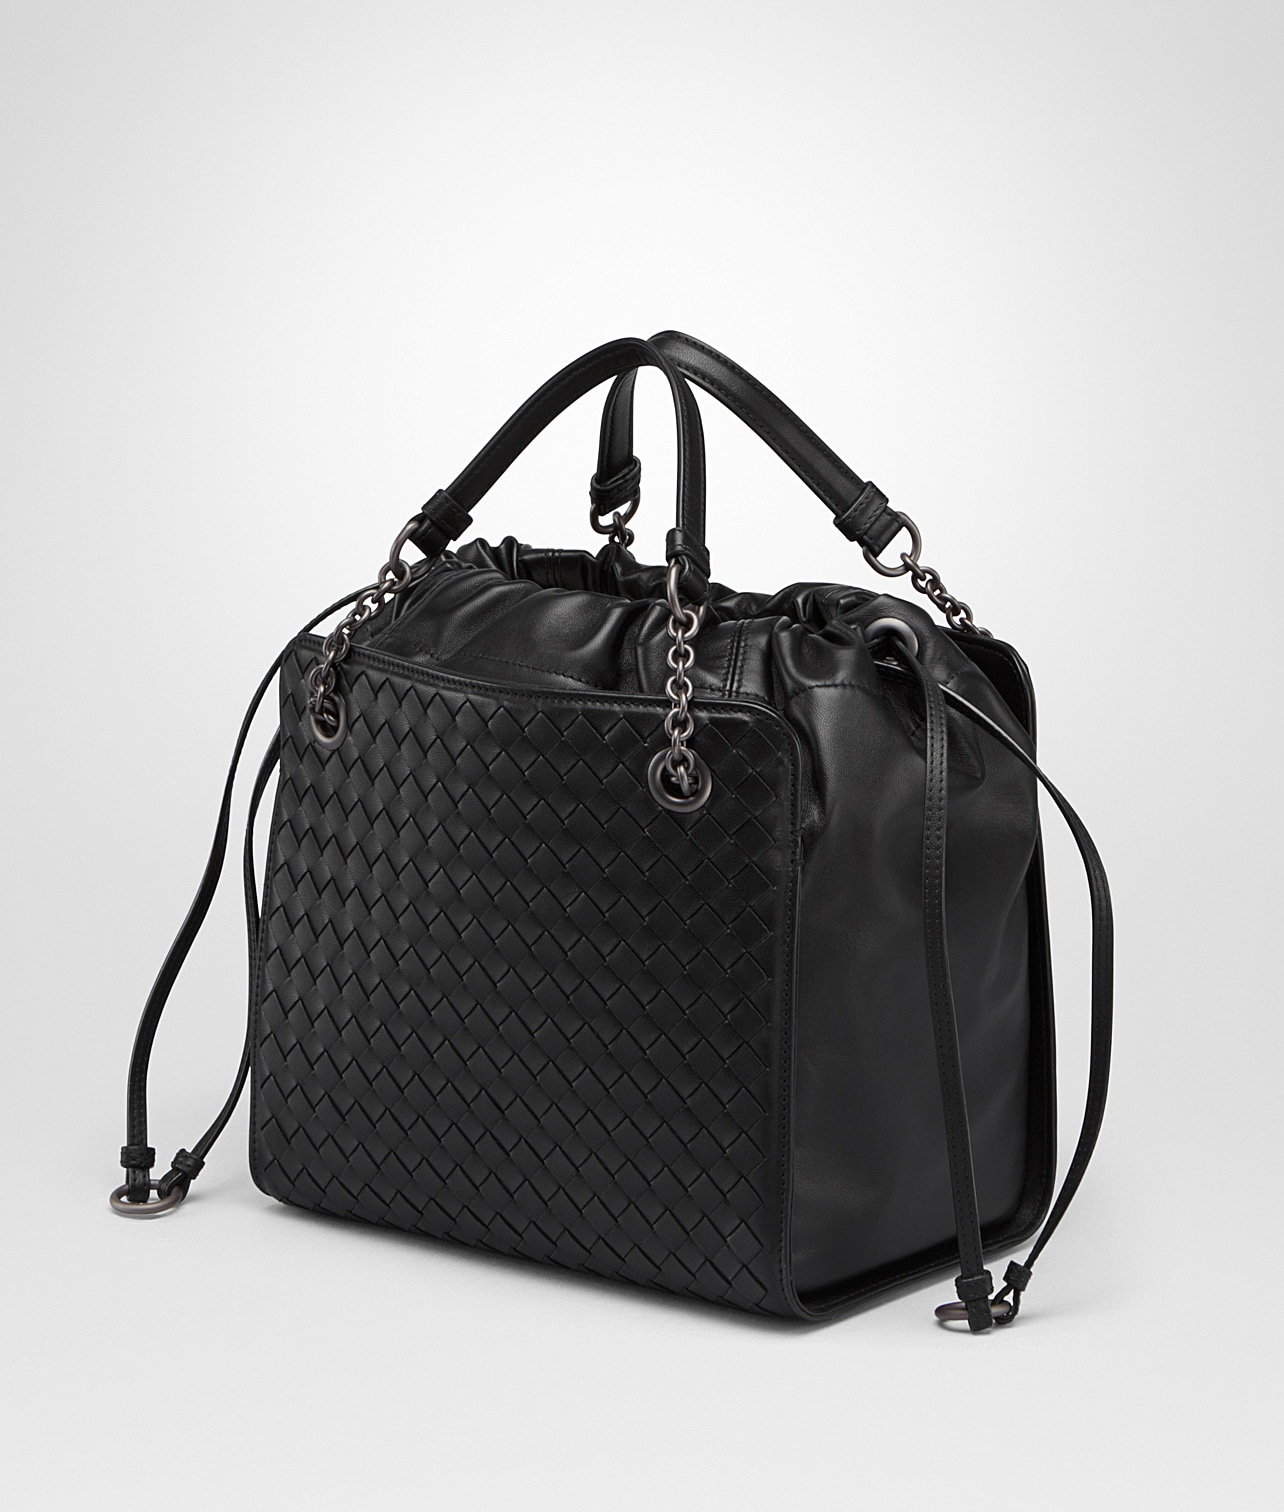 Bottega Veneta Nero Nappa with Intrecciato Small Tote Bag 2995987e69613